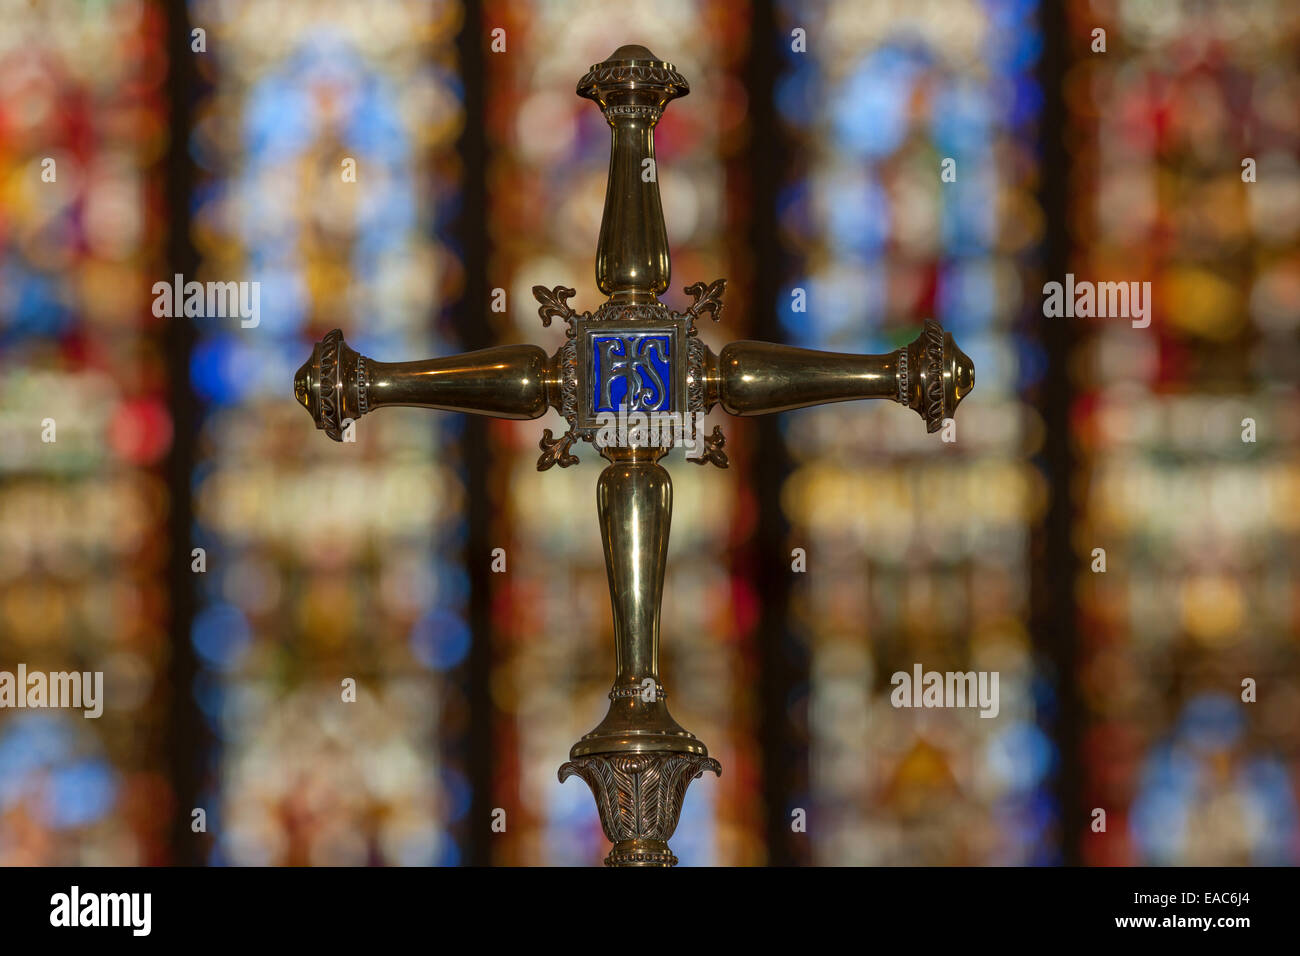 Decorated brass cross against a background of stained glass windows - Stock Image